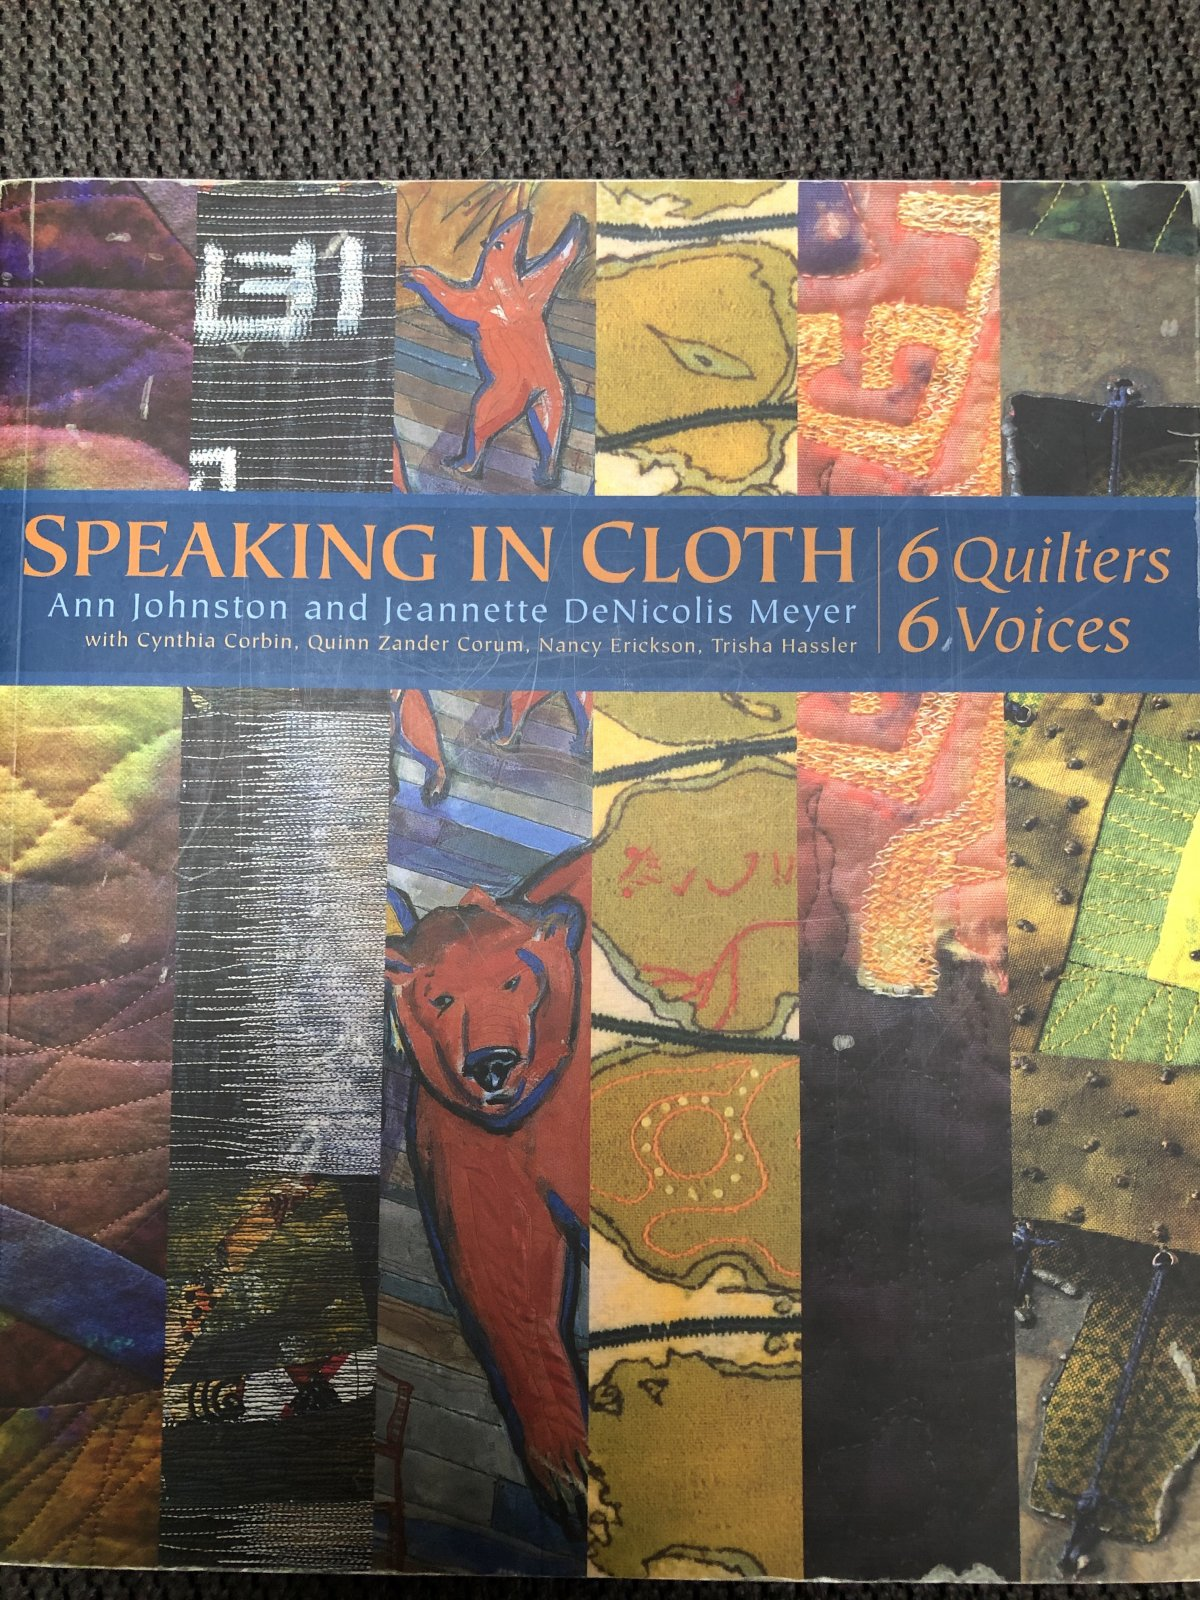 Speaking in Cloth